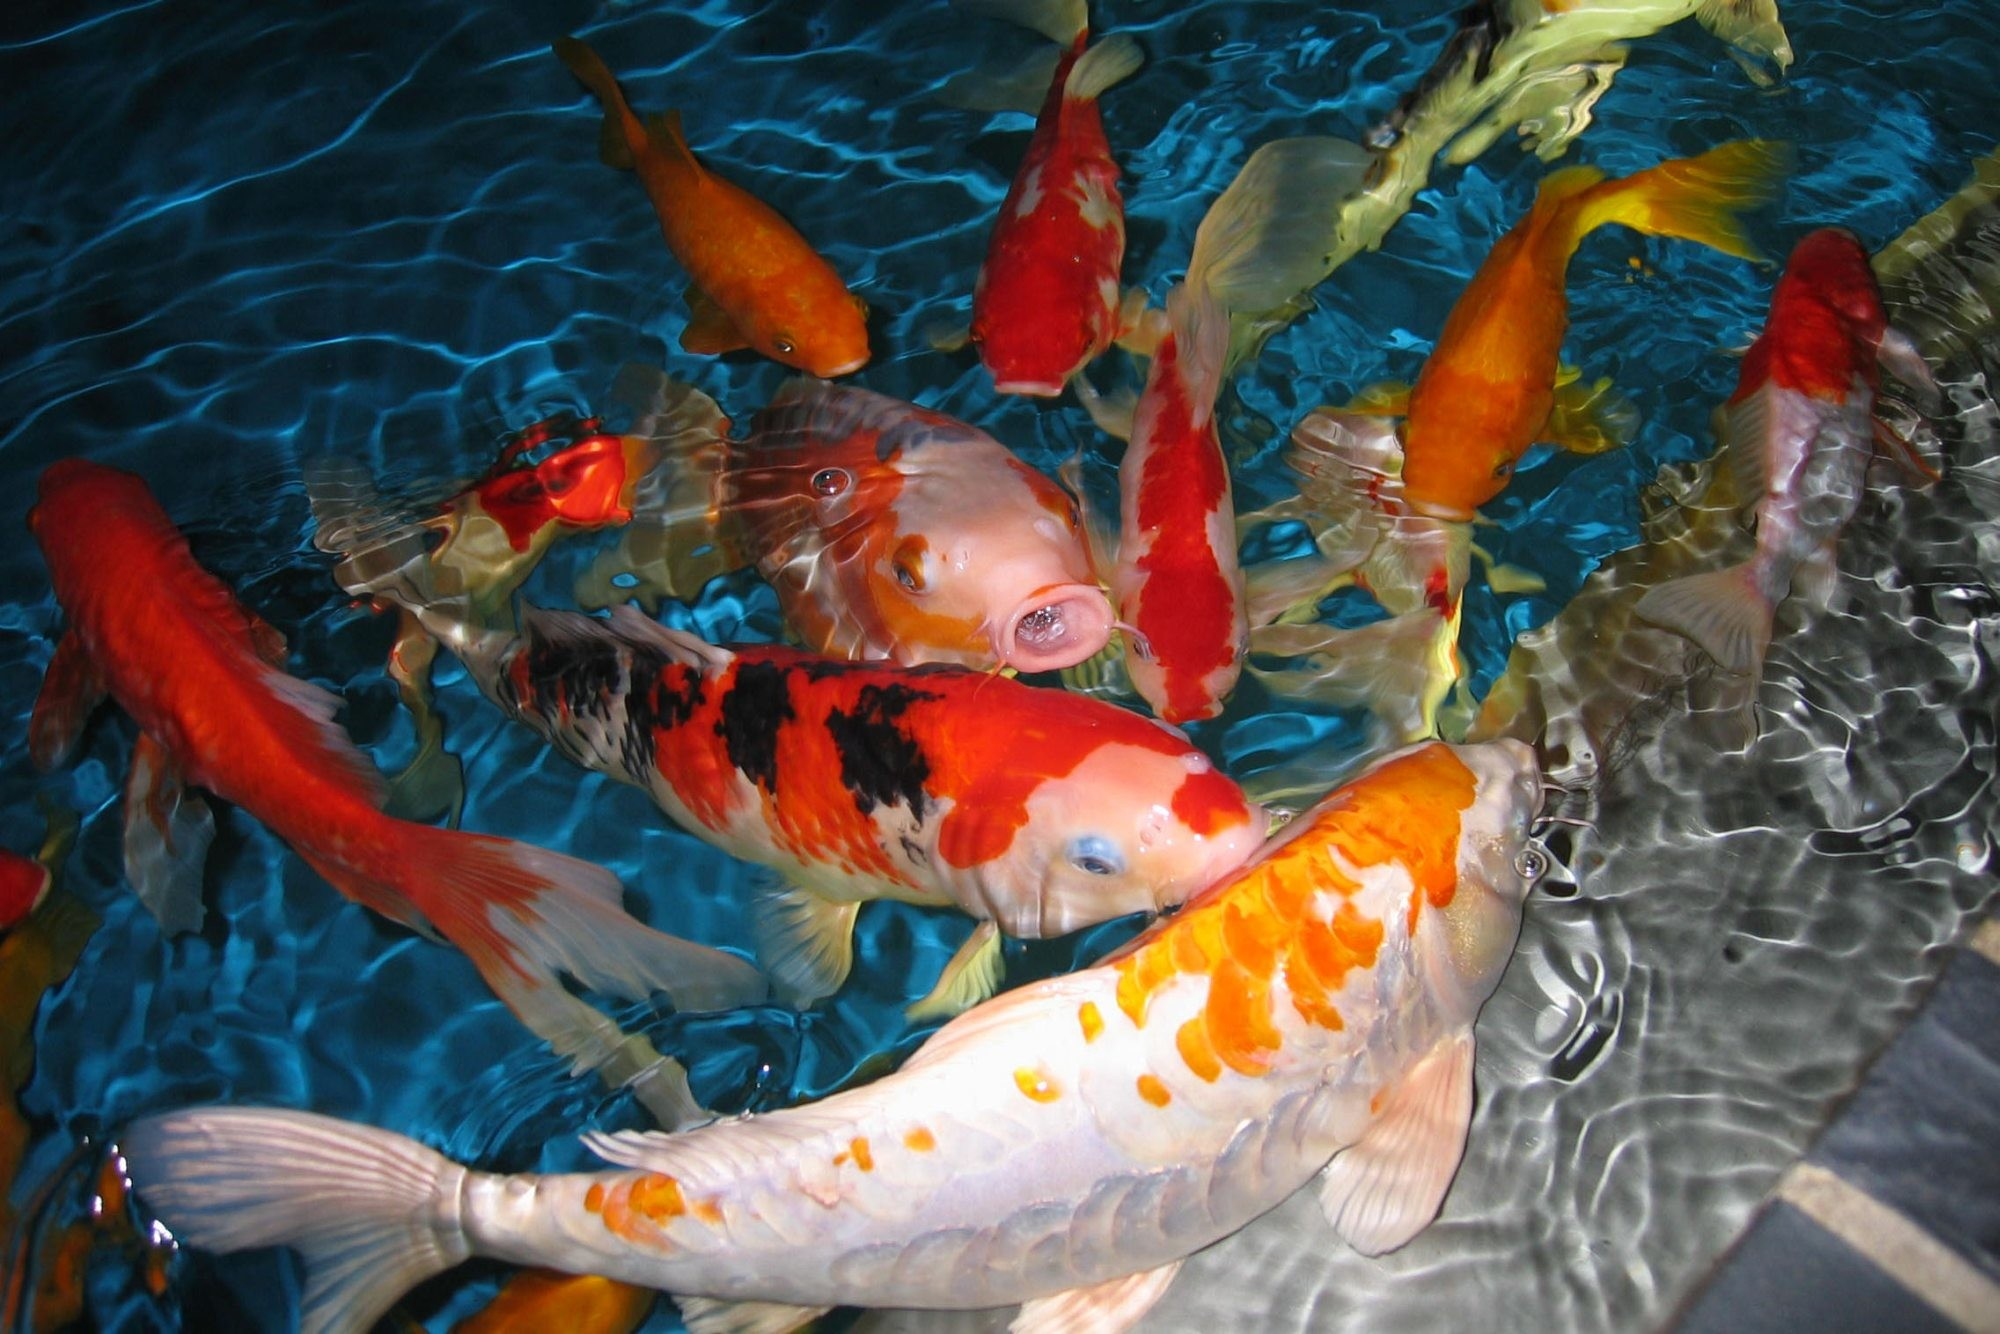 2000x1334 Koi Free Live Wallpaper Android Apps on Google Play 1024×768 Koi Wallpaper  (38 Wallpapers) | Adorable Wallpapers | Desktop | Pinterest | Koi wallpaper,  Koi ...